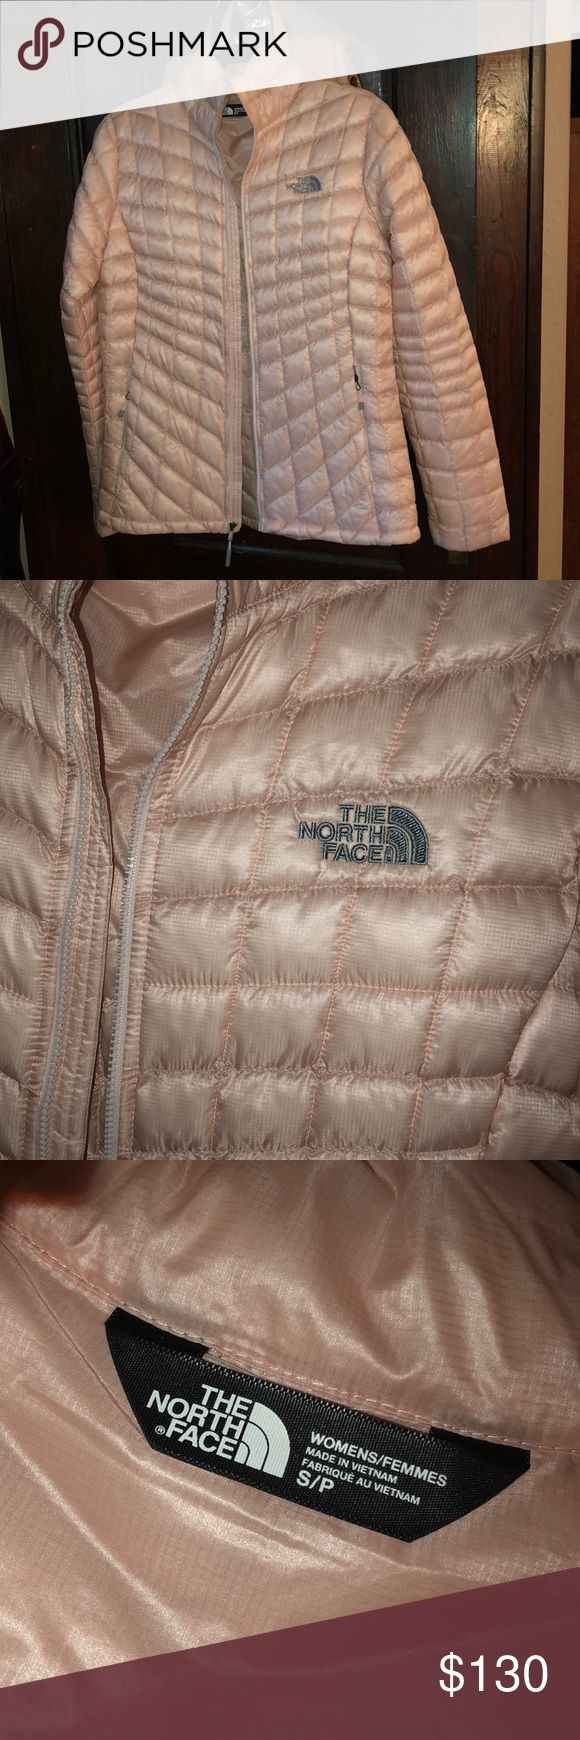 North Fave Thermoball Jacket Brand new never worn but no tags North Face Jackets & Coats Puffers